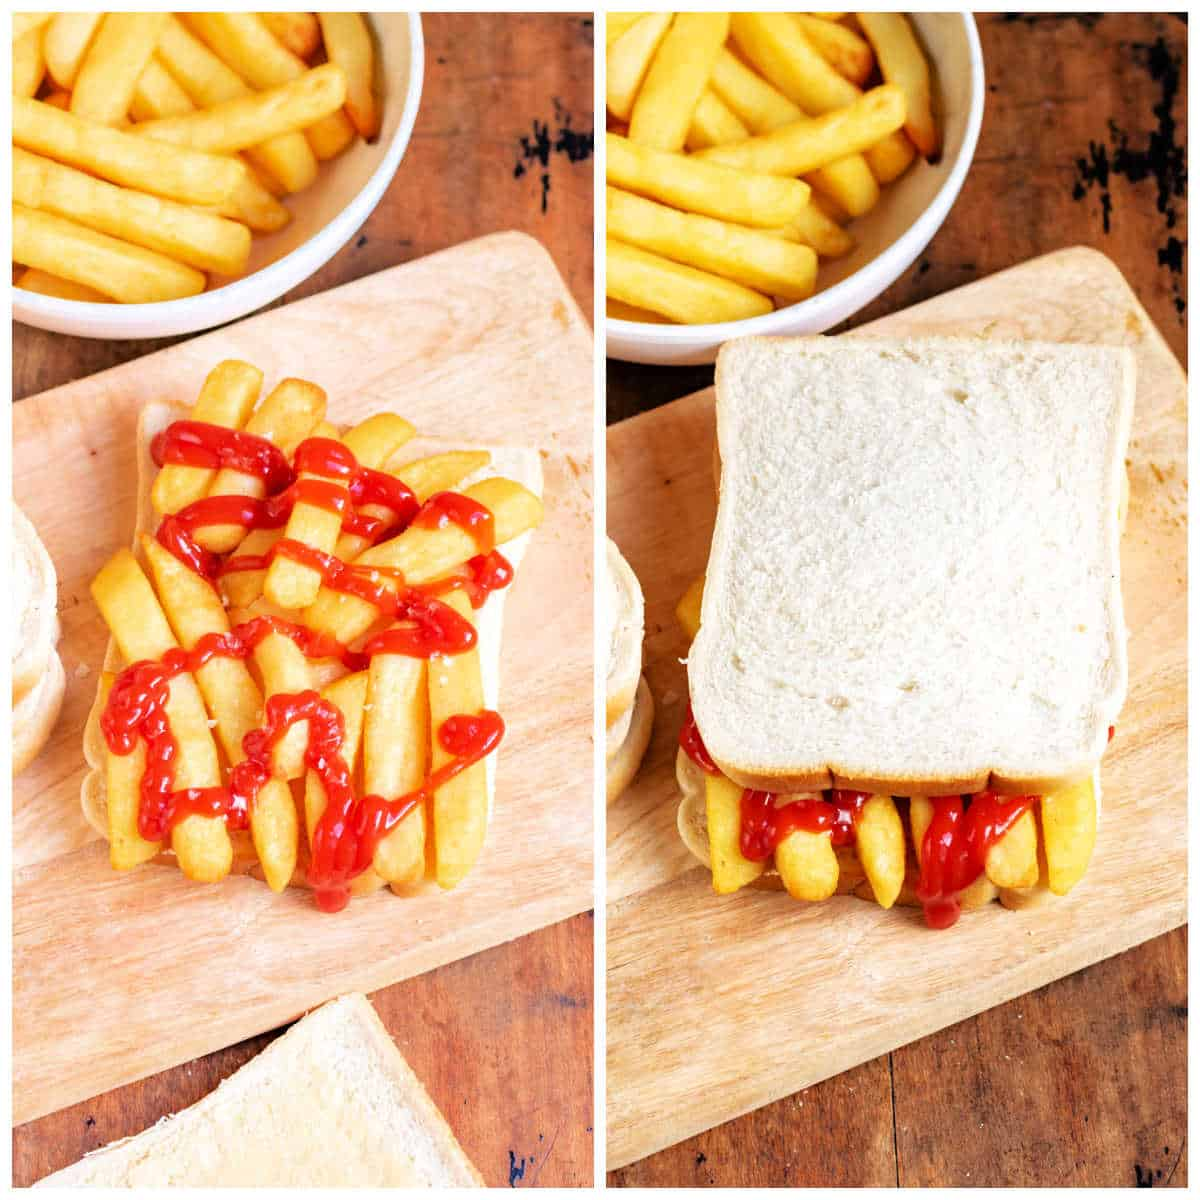 Collage: ketchup on the chips, top slice of bread added.